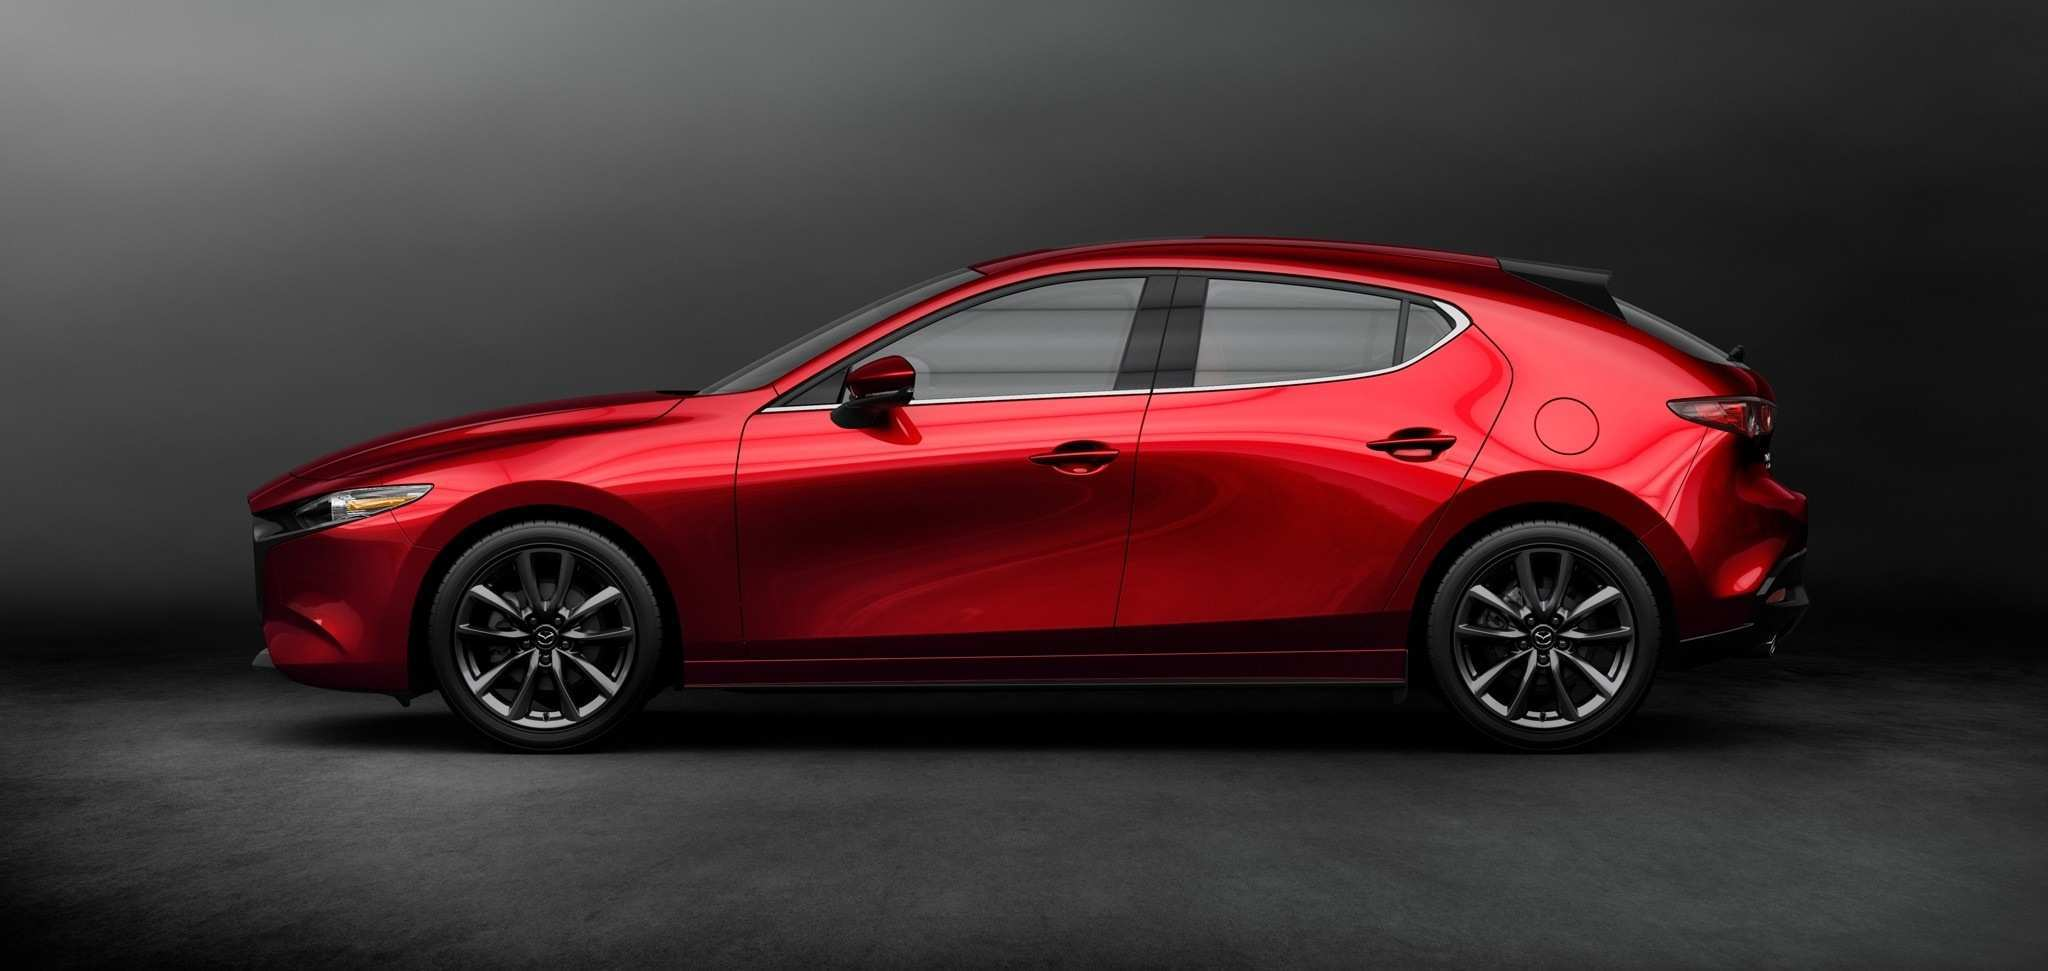 73 Gallery of Mazdaspeed 3 2020 Price with Mazdaspeed 3 2020